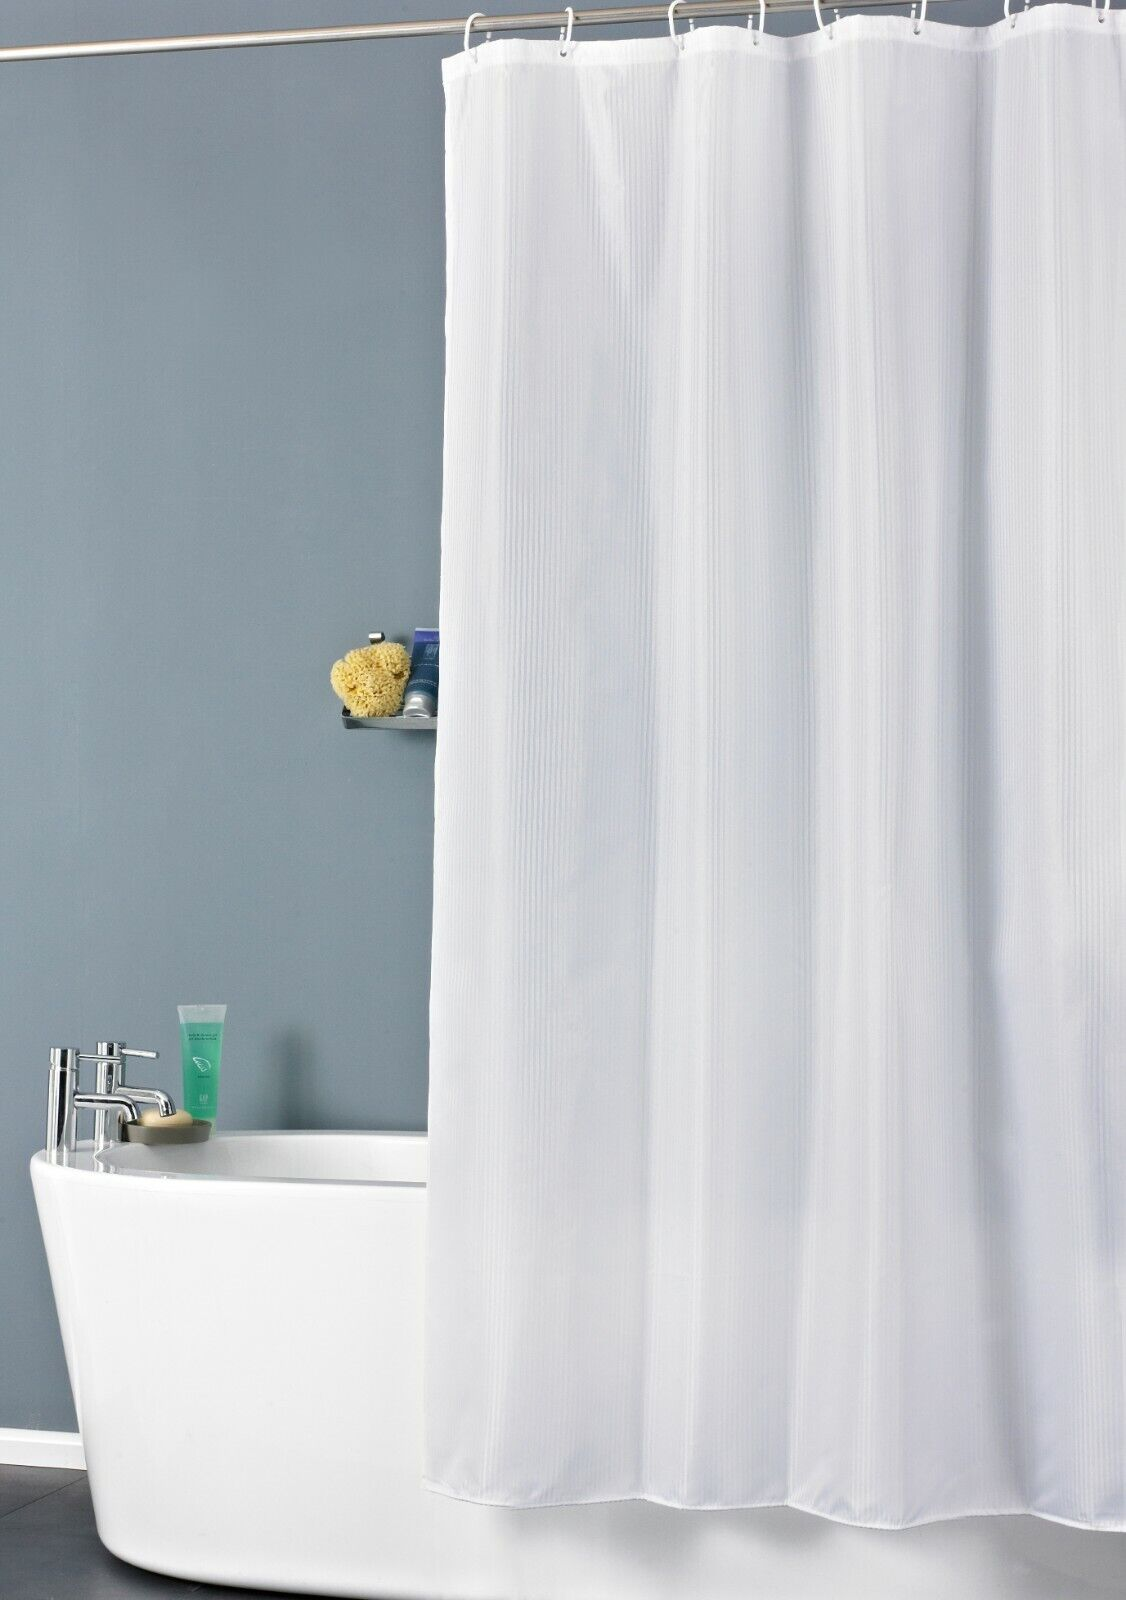 Waterproof Shower Curtains Extra Long Plain White Bathroom With 12 Hooks Ring Ebay